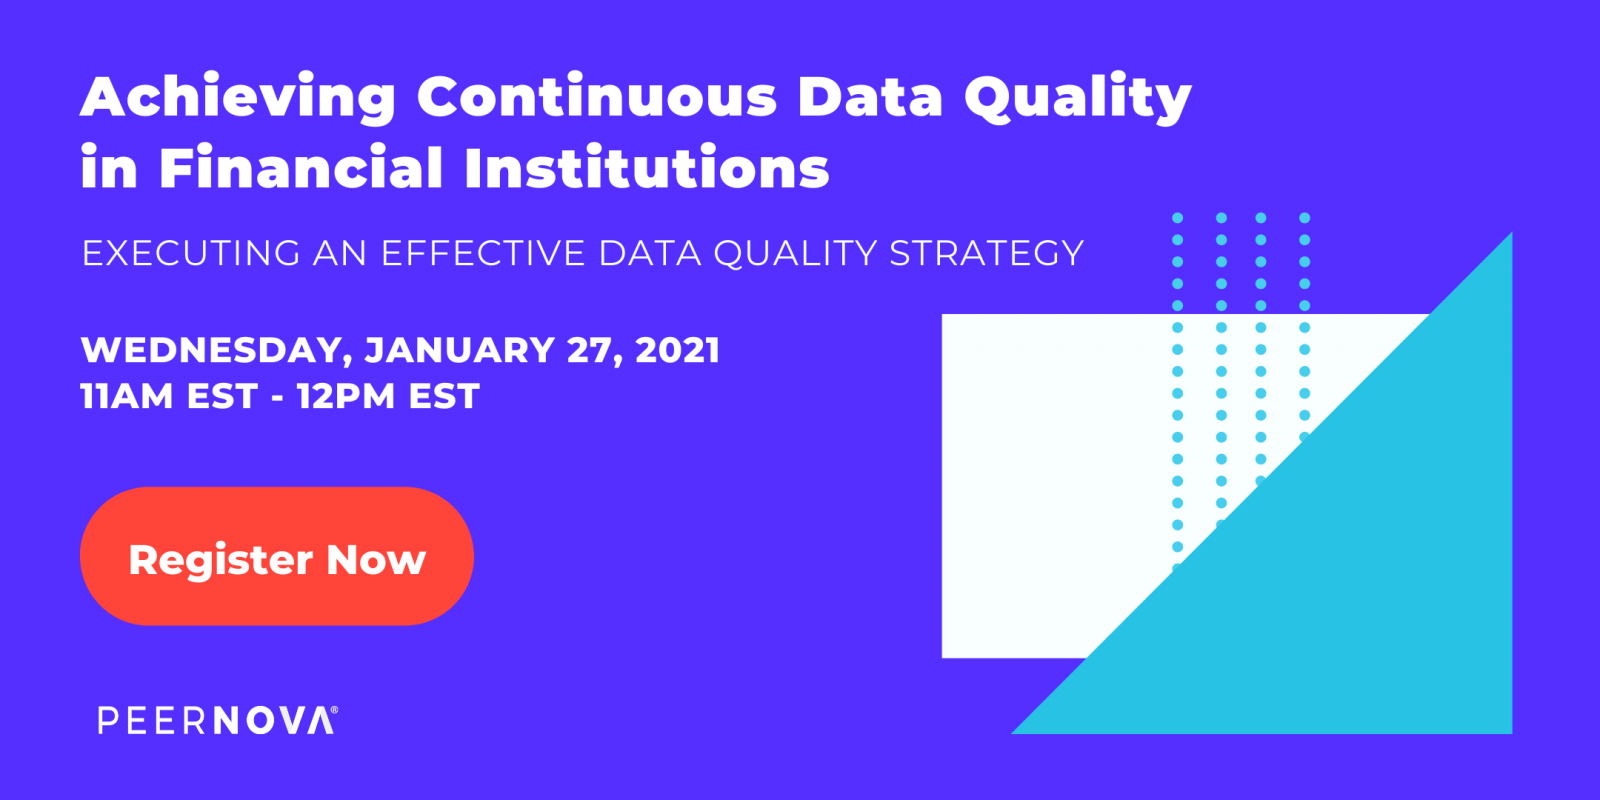 Achieving Continuous Data Quality in Financial Institutions Webinar